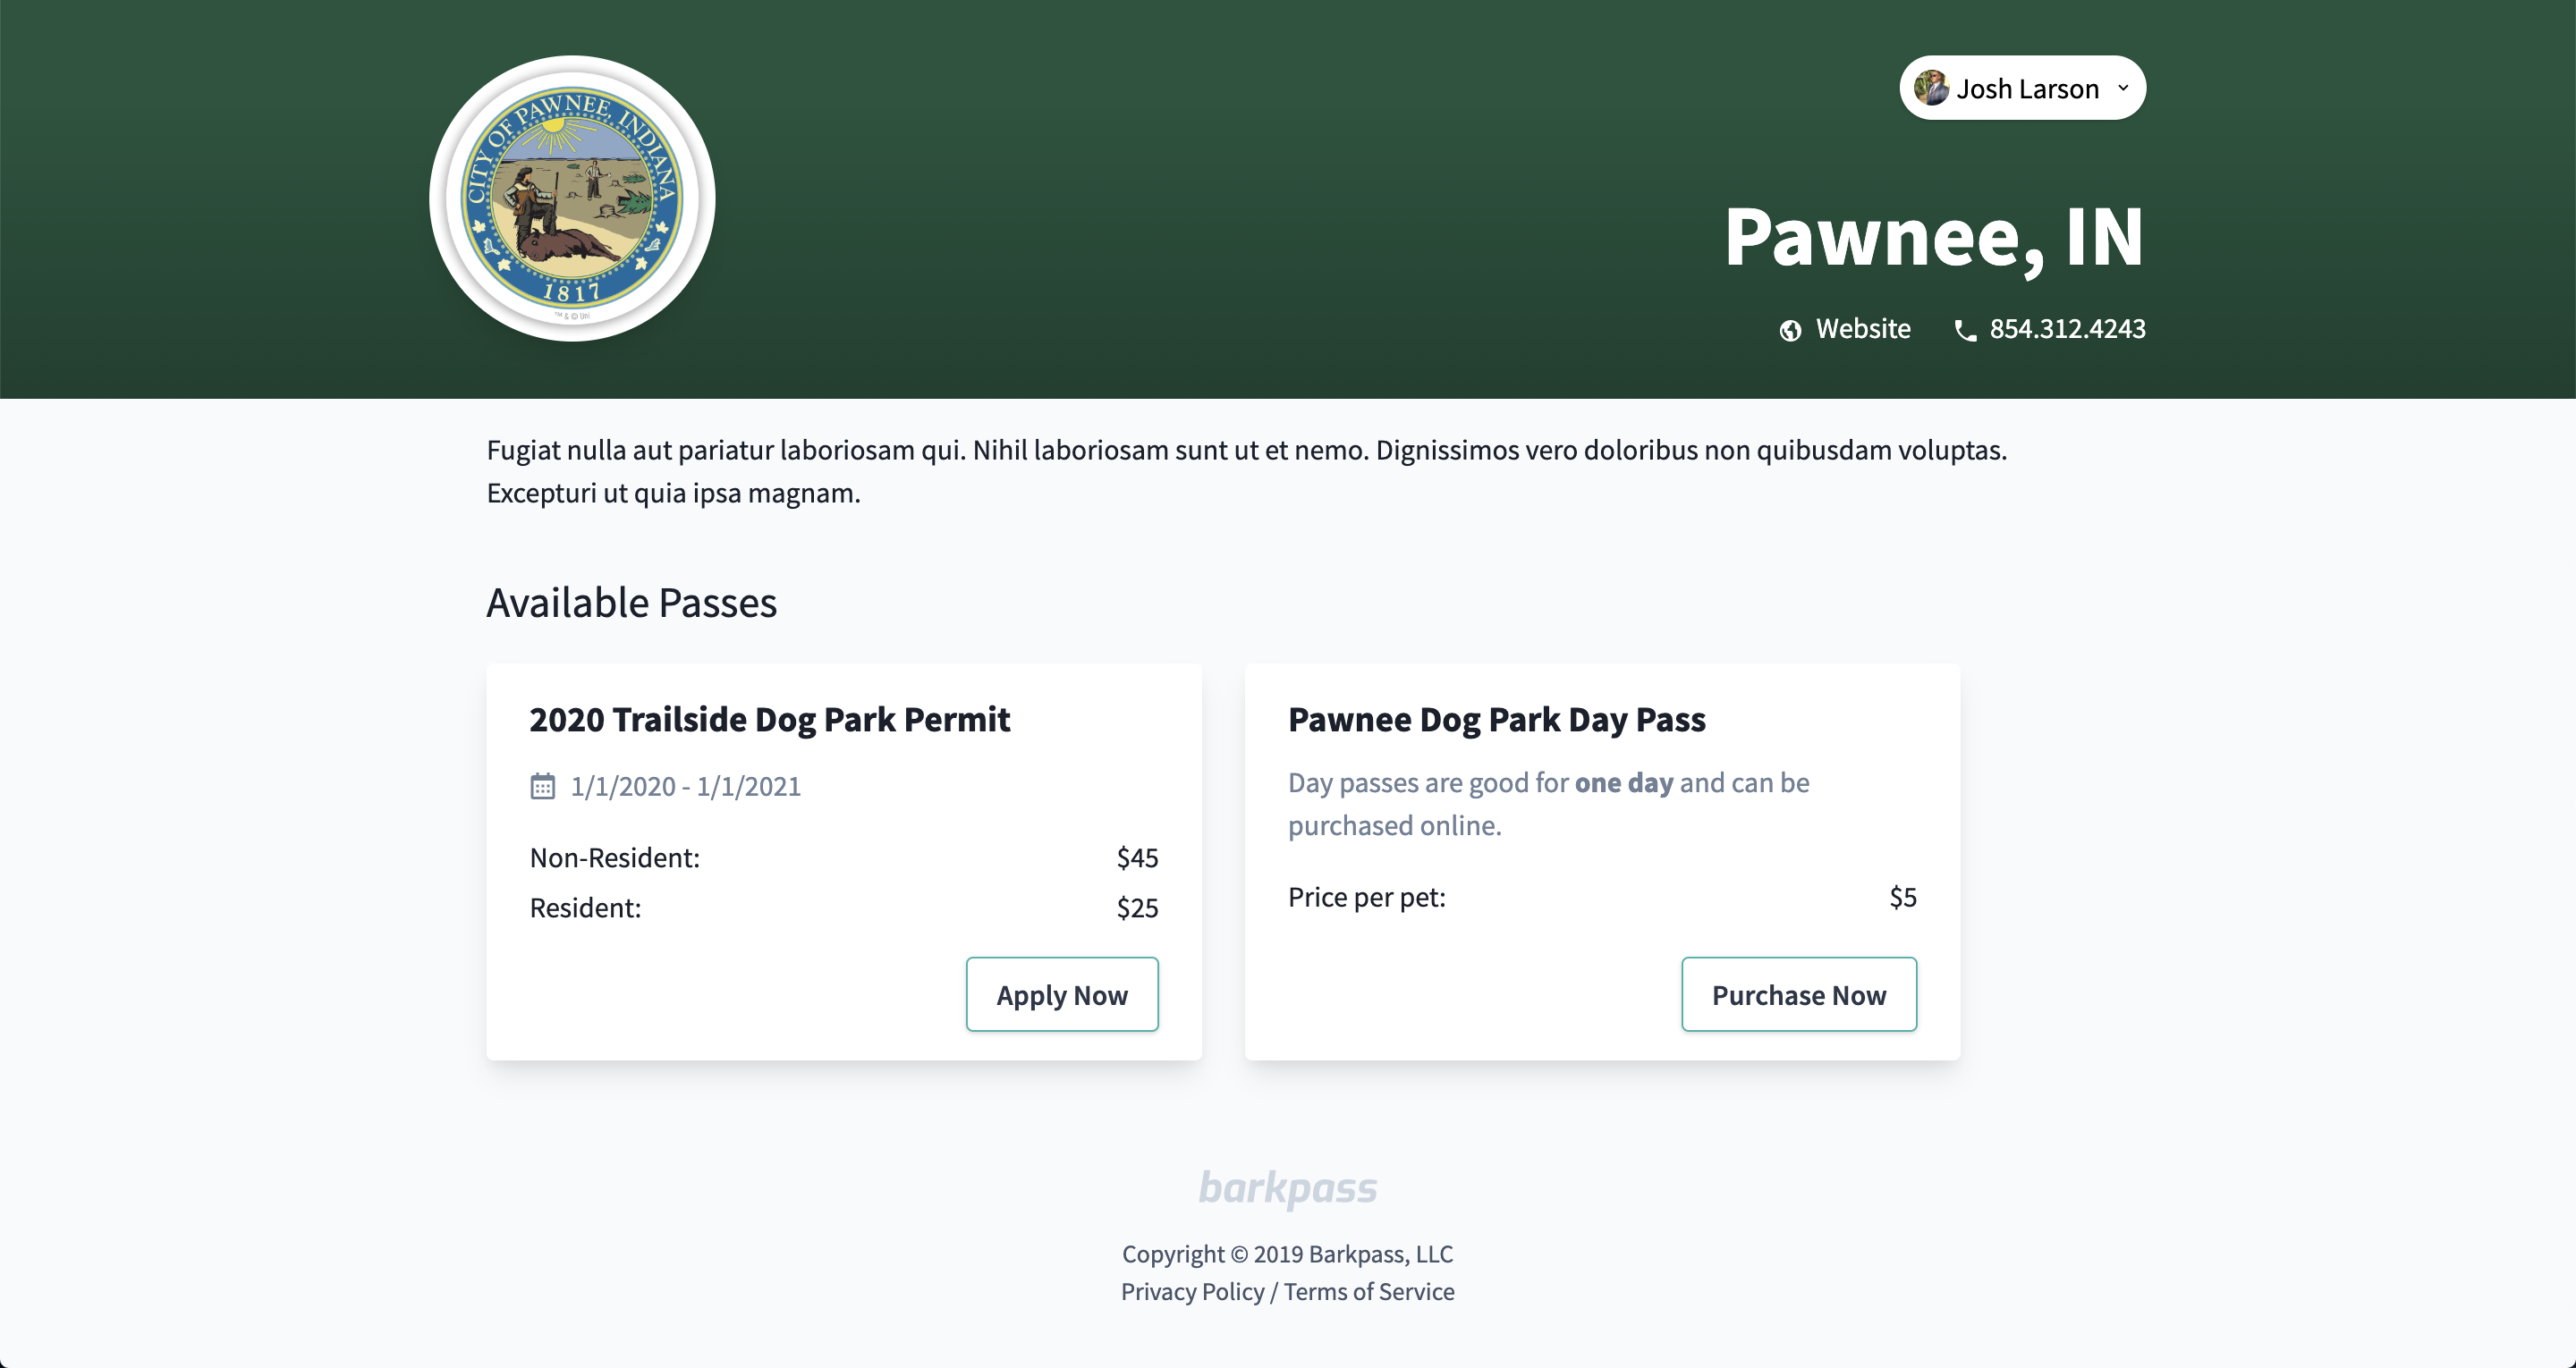 City landing page for Pawnee, Indiana